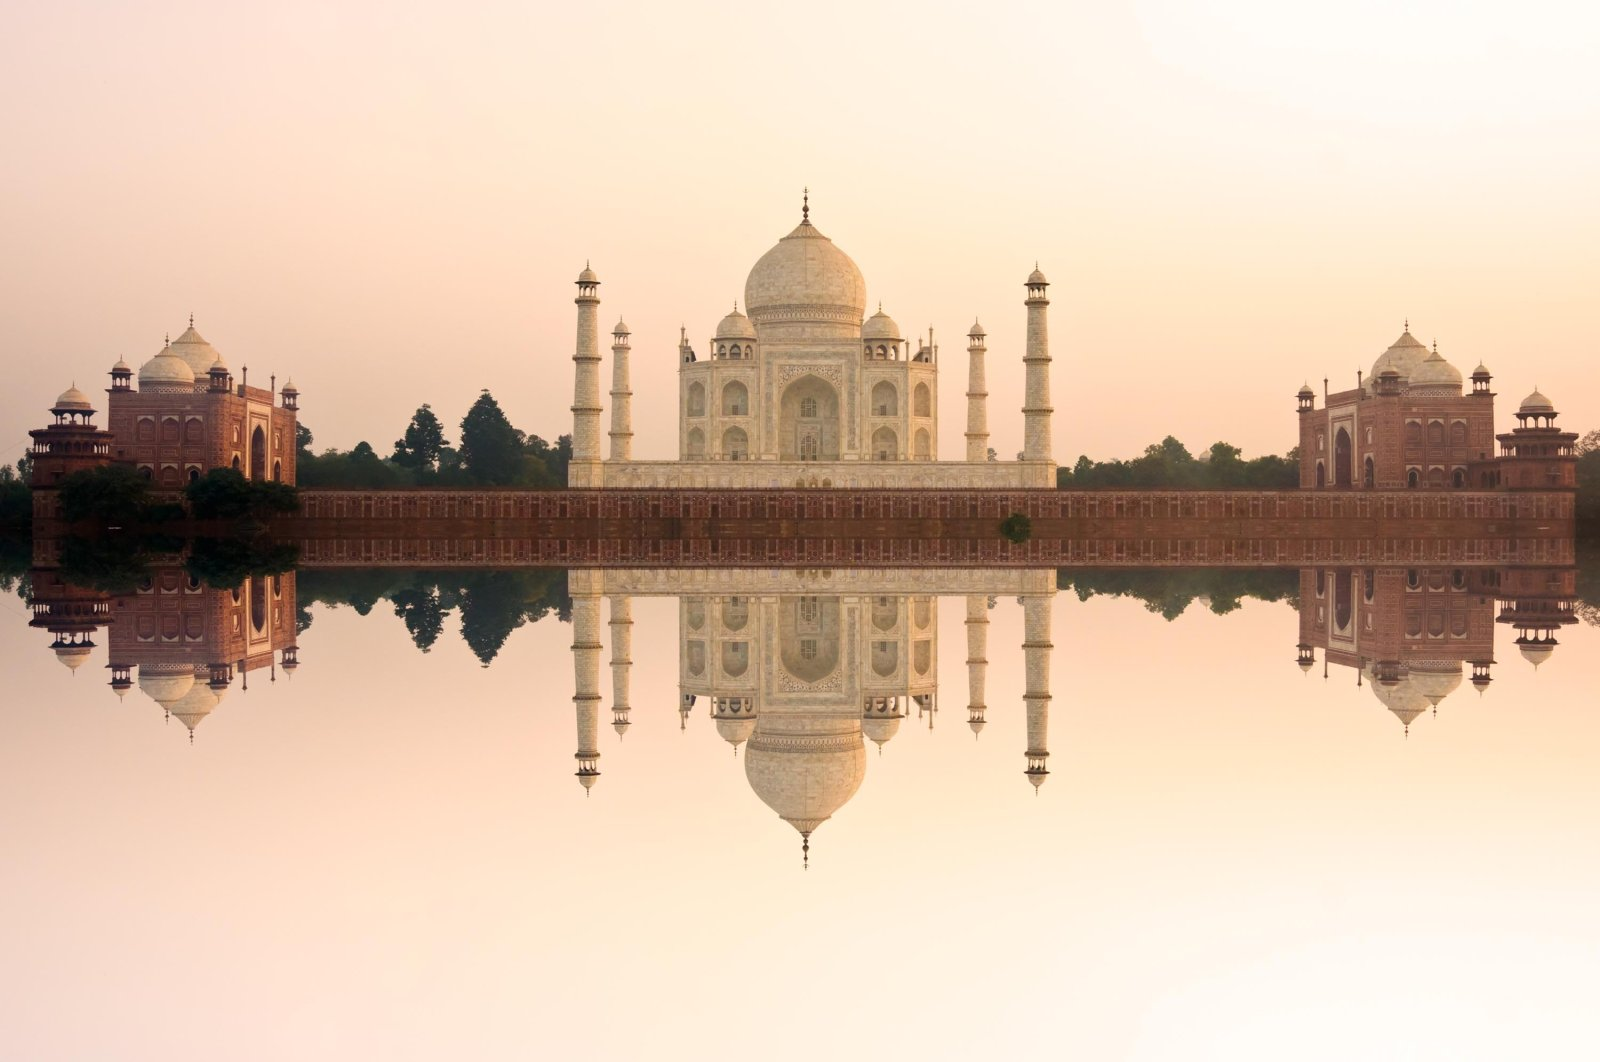 Panoramic view of Taj Mahal at sunset with reflection, Agra, India. (Shutterstock Photo)